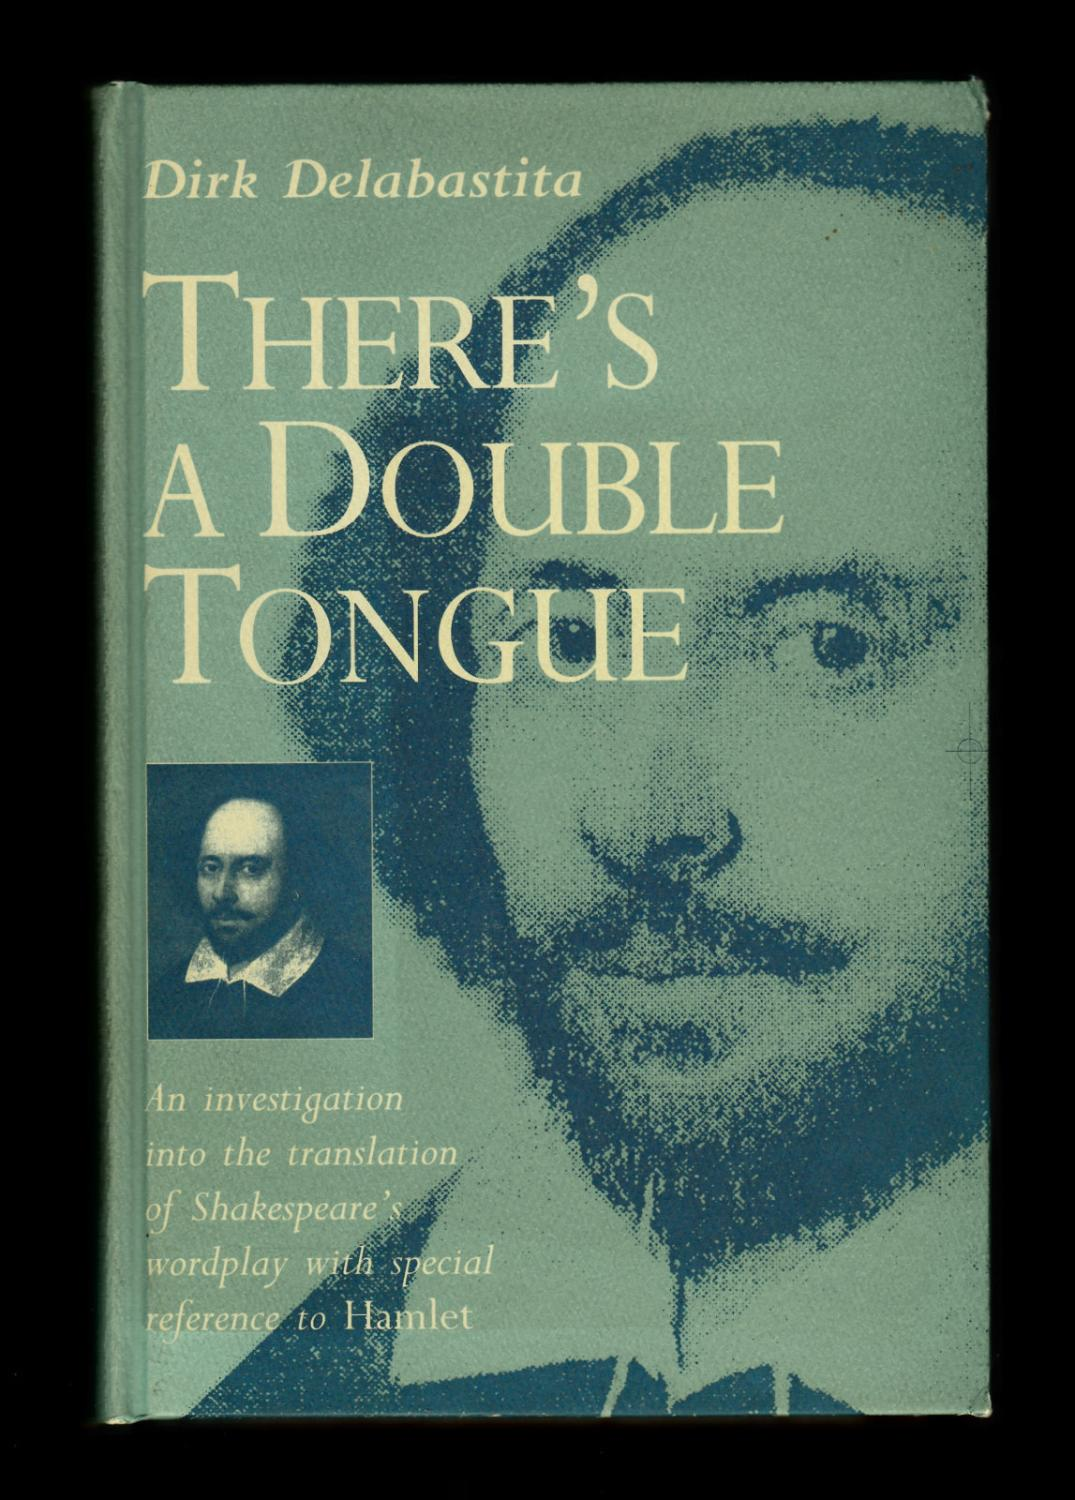 Theres a Double Tongue. An investigation into the translation of Shakespeares wordplay, with special